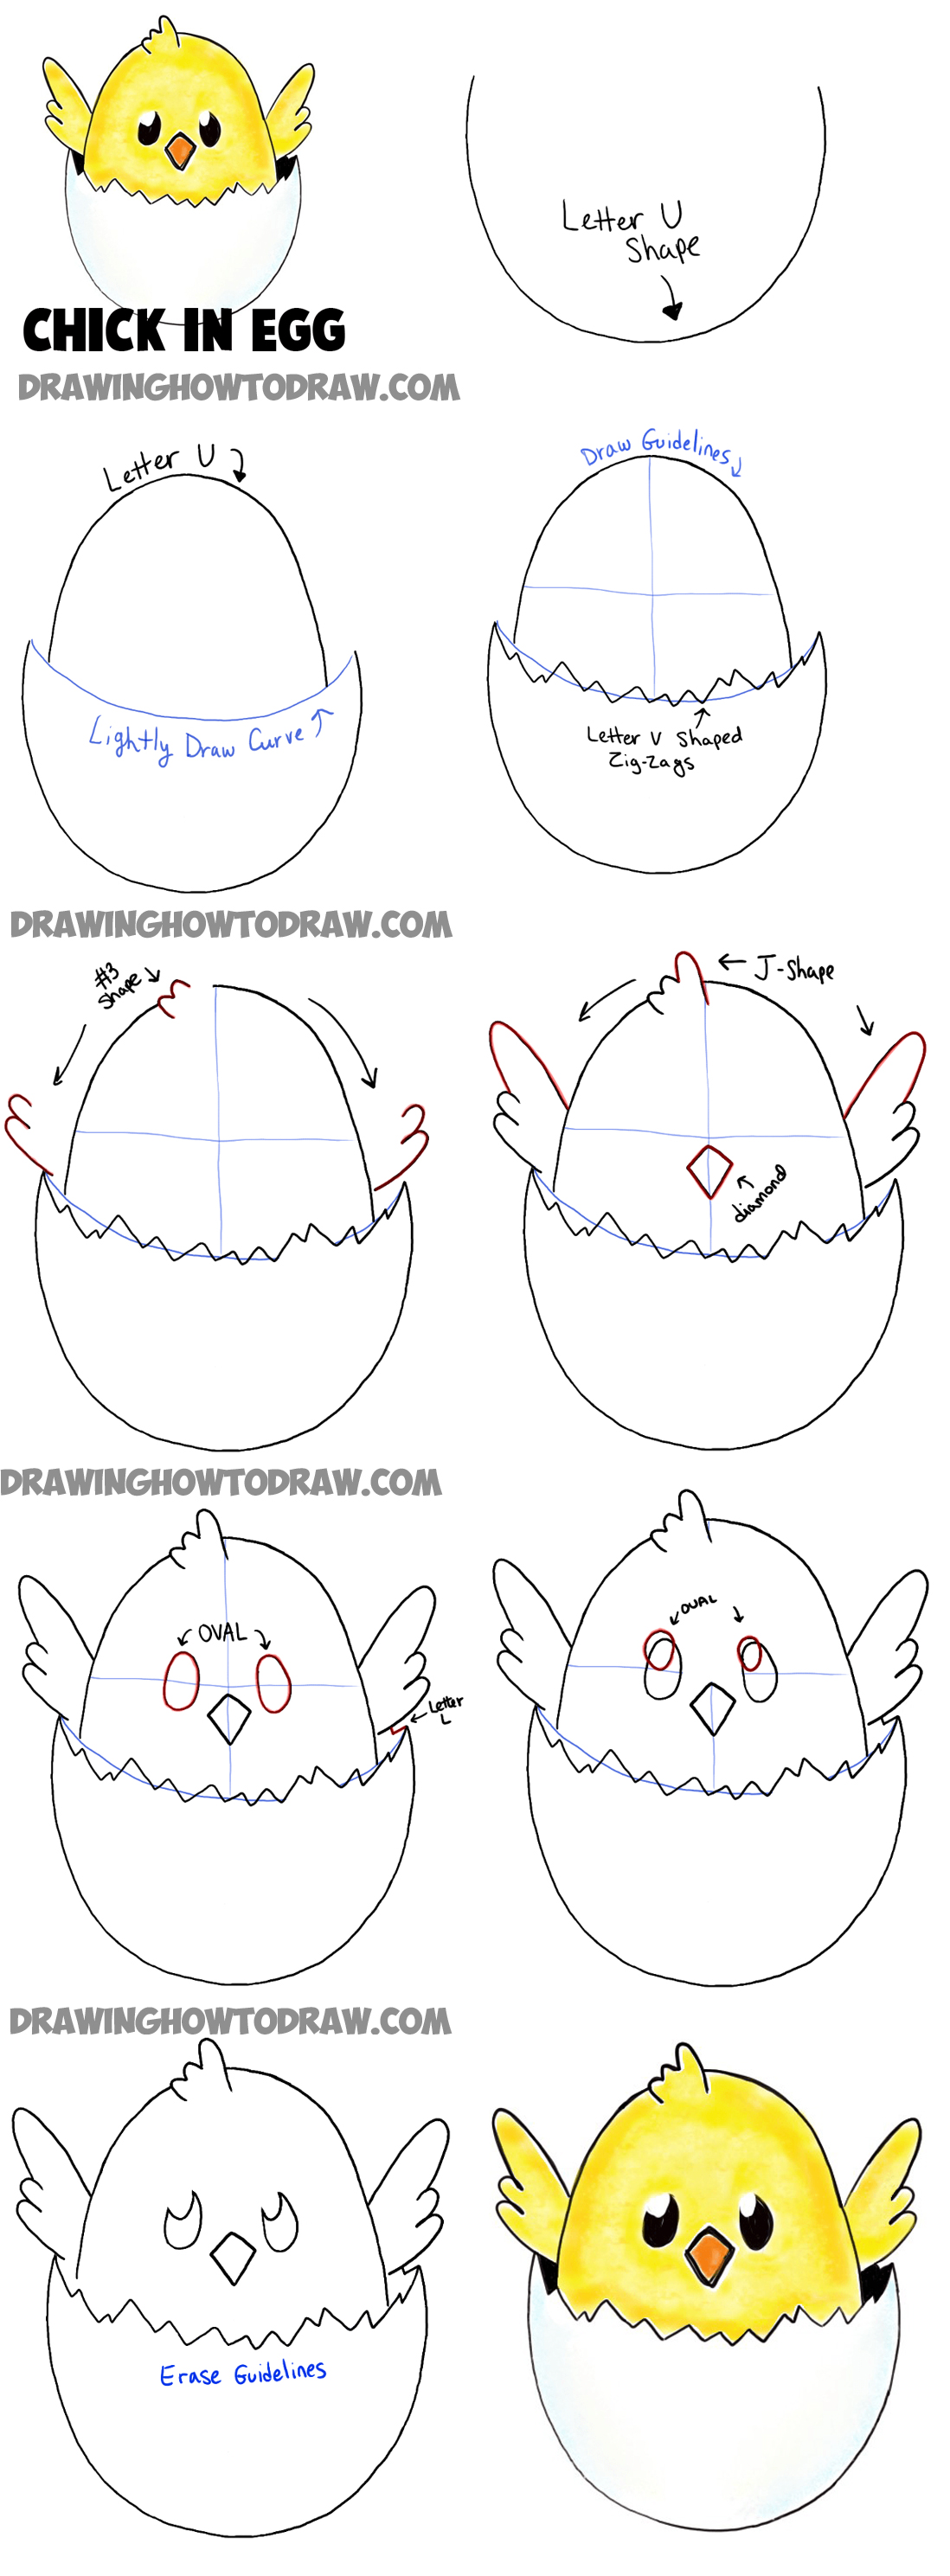 how to draw a baby in an egg shell for easter drawing